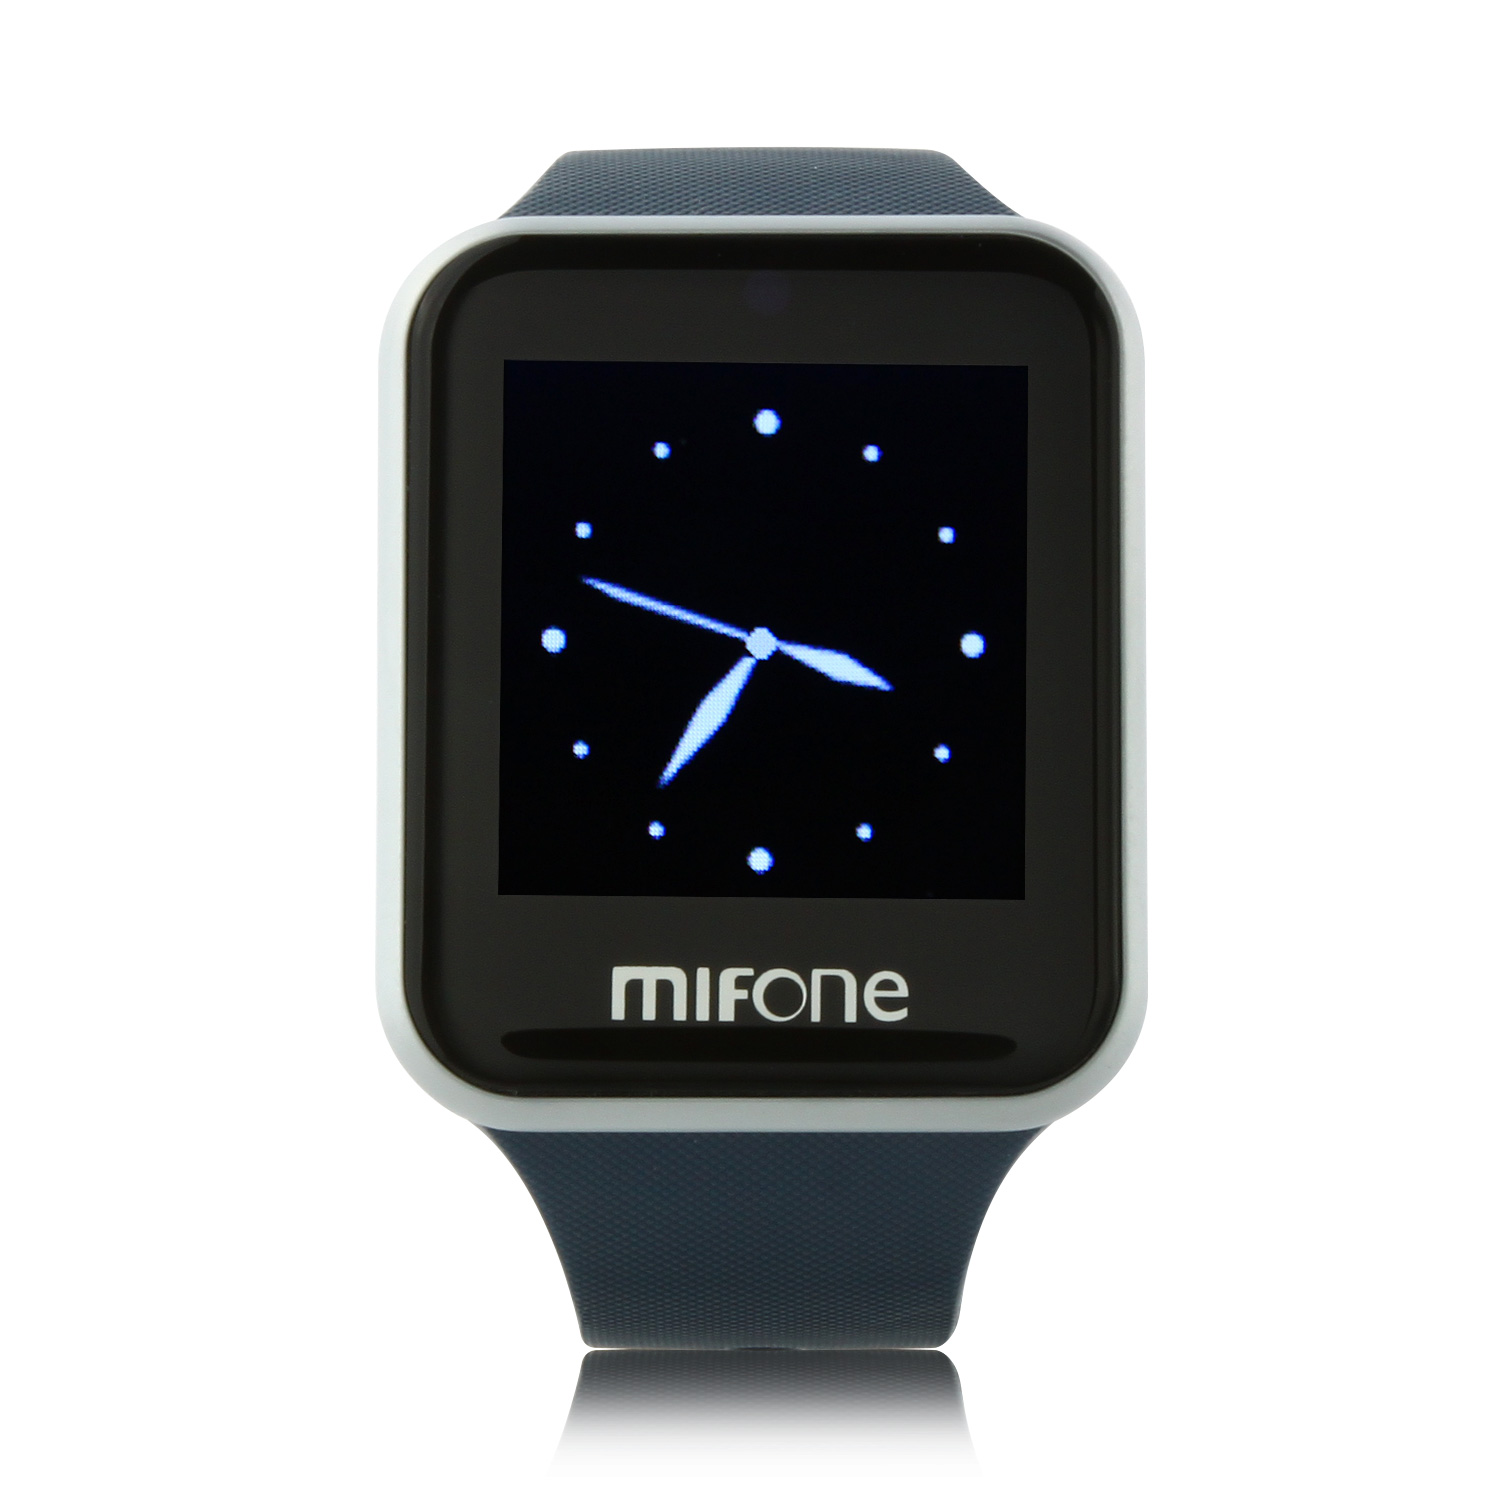 "MIFone W15 2.5D Sapphire Glass Smart Bluetooth Watch 1.5"" Screen TPSiV Safe Strap Blue"